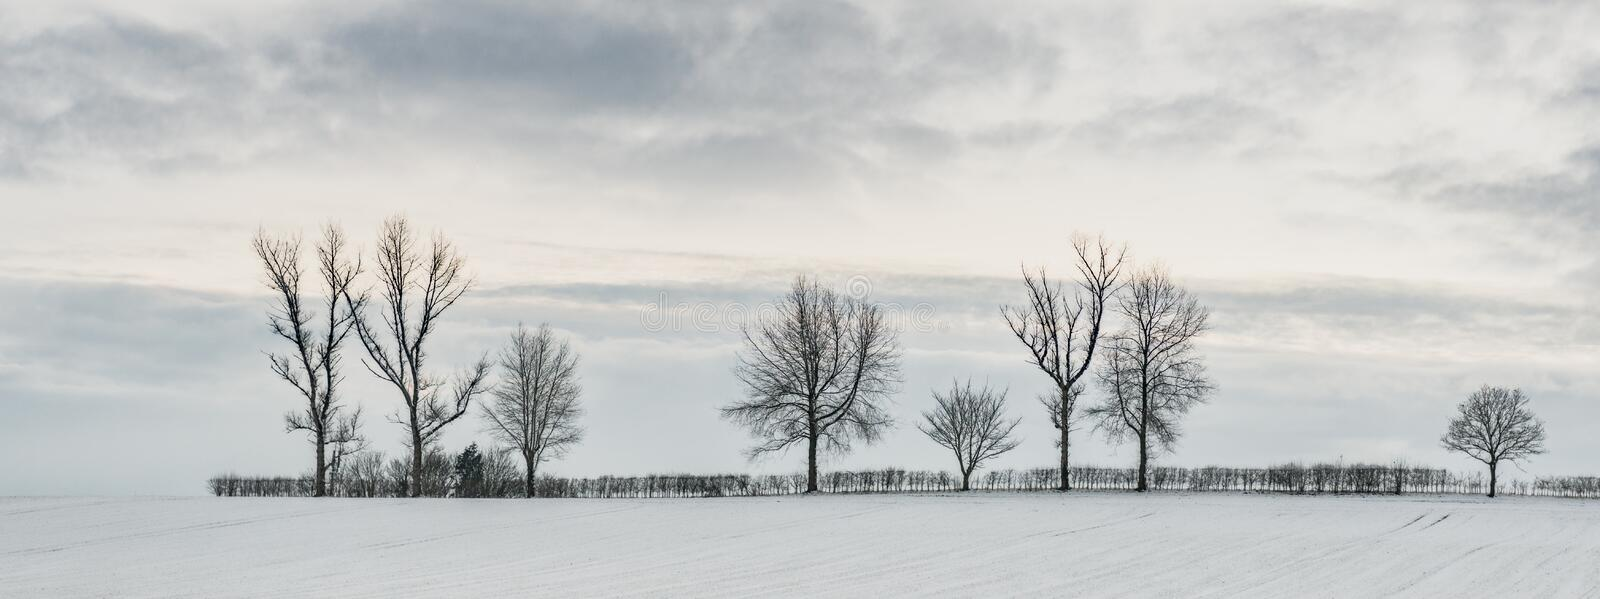 Tree Line In Snow royalty free stock photos